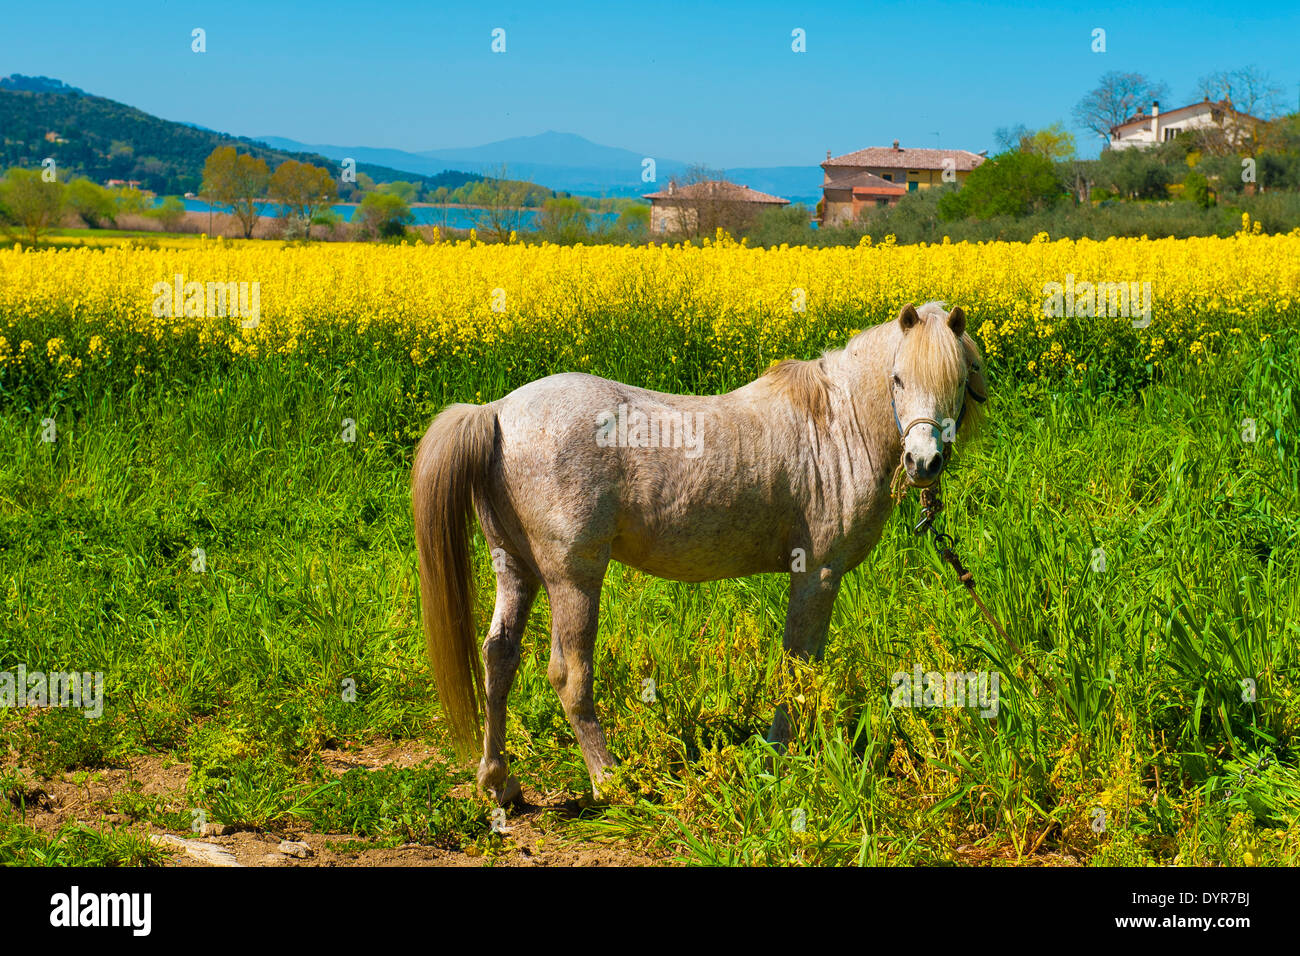 Lake trasimeno umbria a beautiful horse pony behind the beauty of a beautiful horse pony behind the beauty of a field of yellow rapeseed flowers typical flower of spring izmirmasajfo